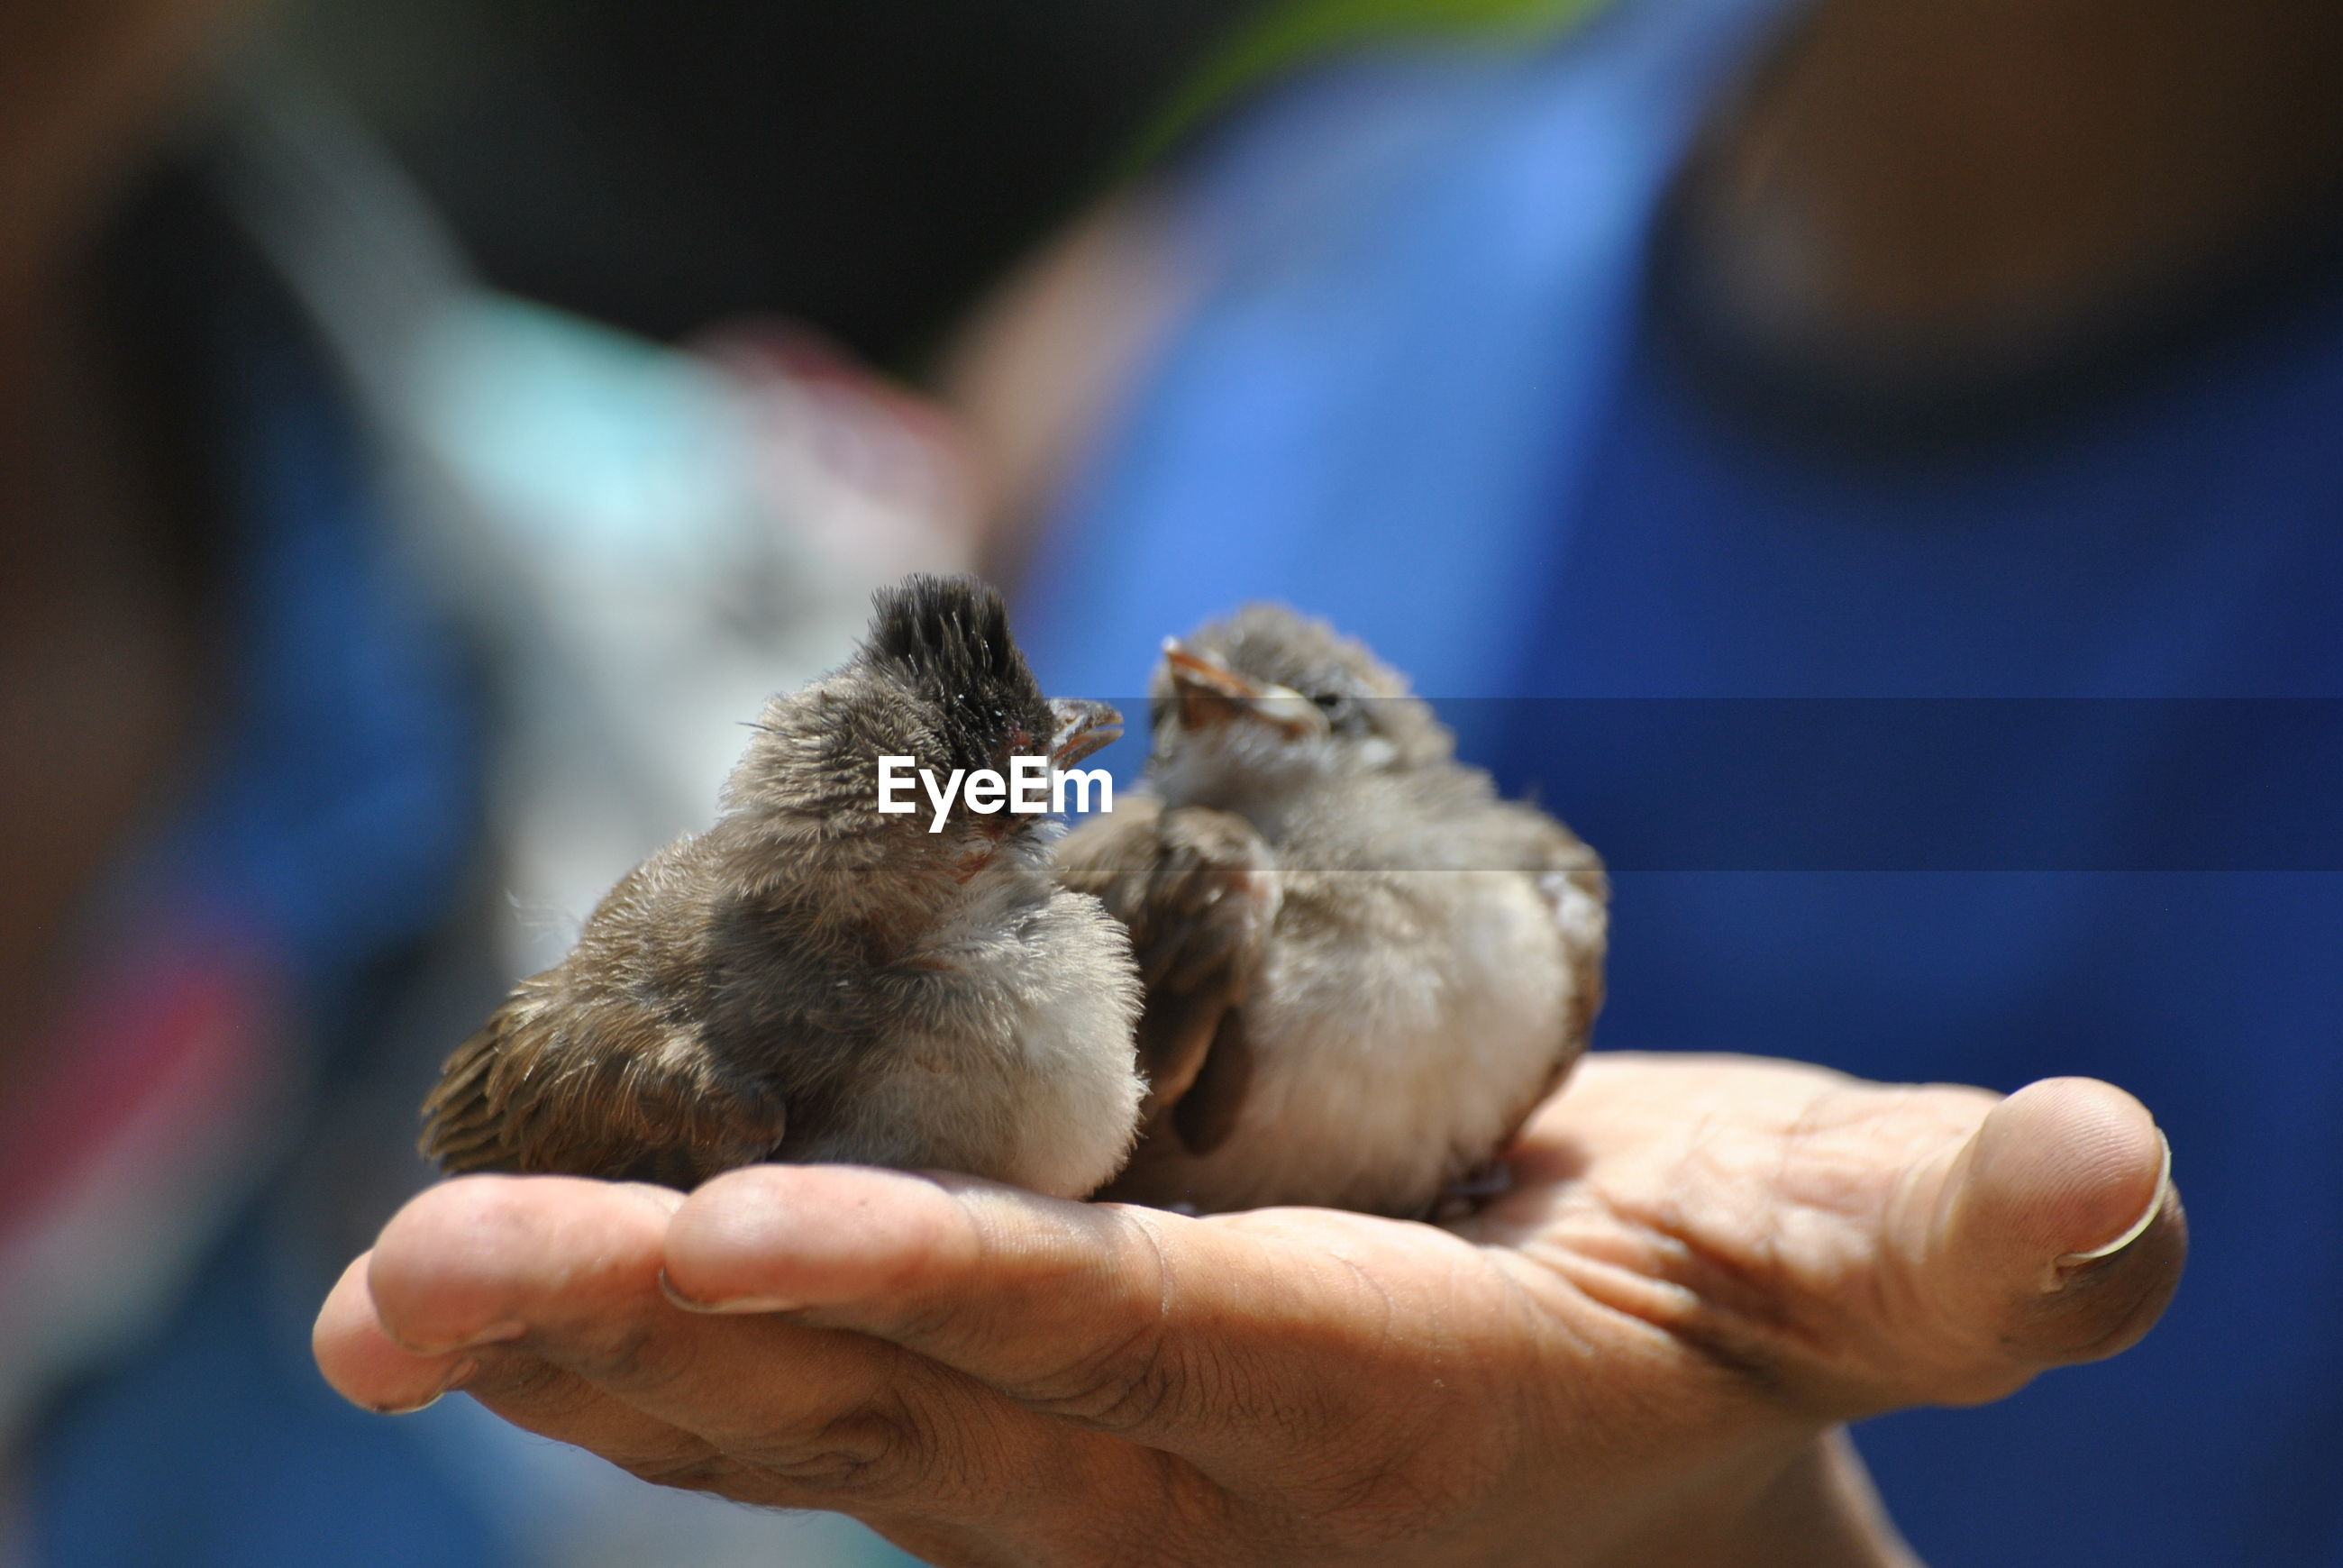 Close-up of hand holding birds